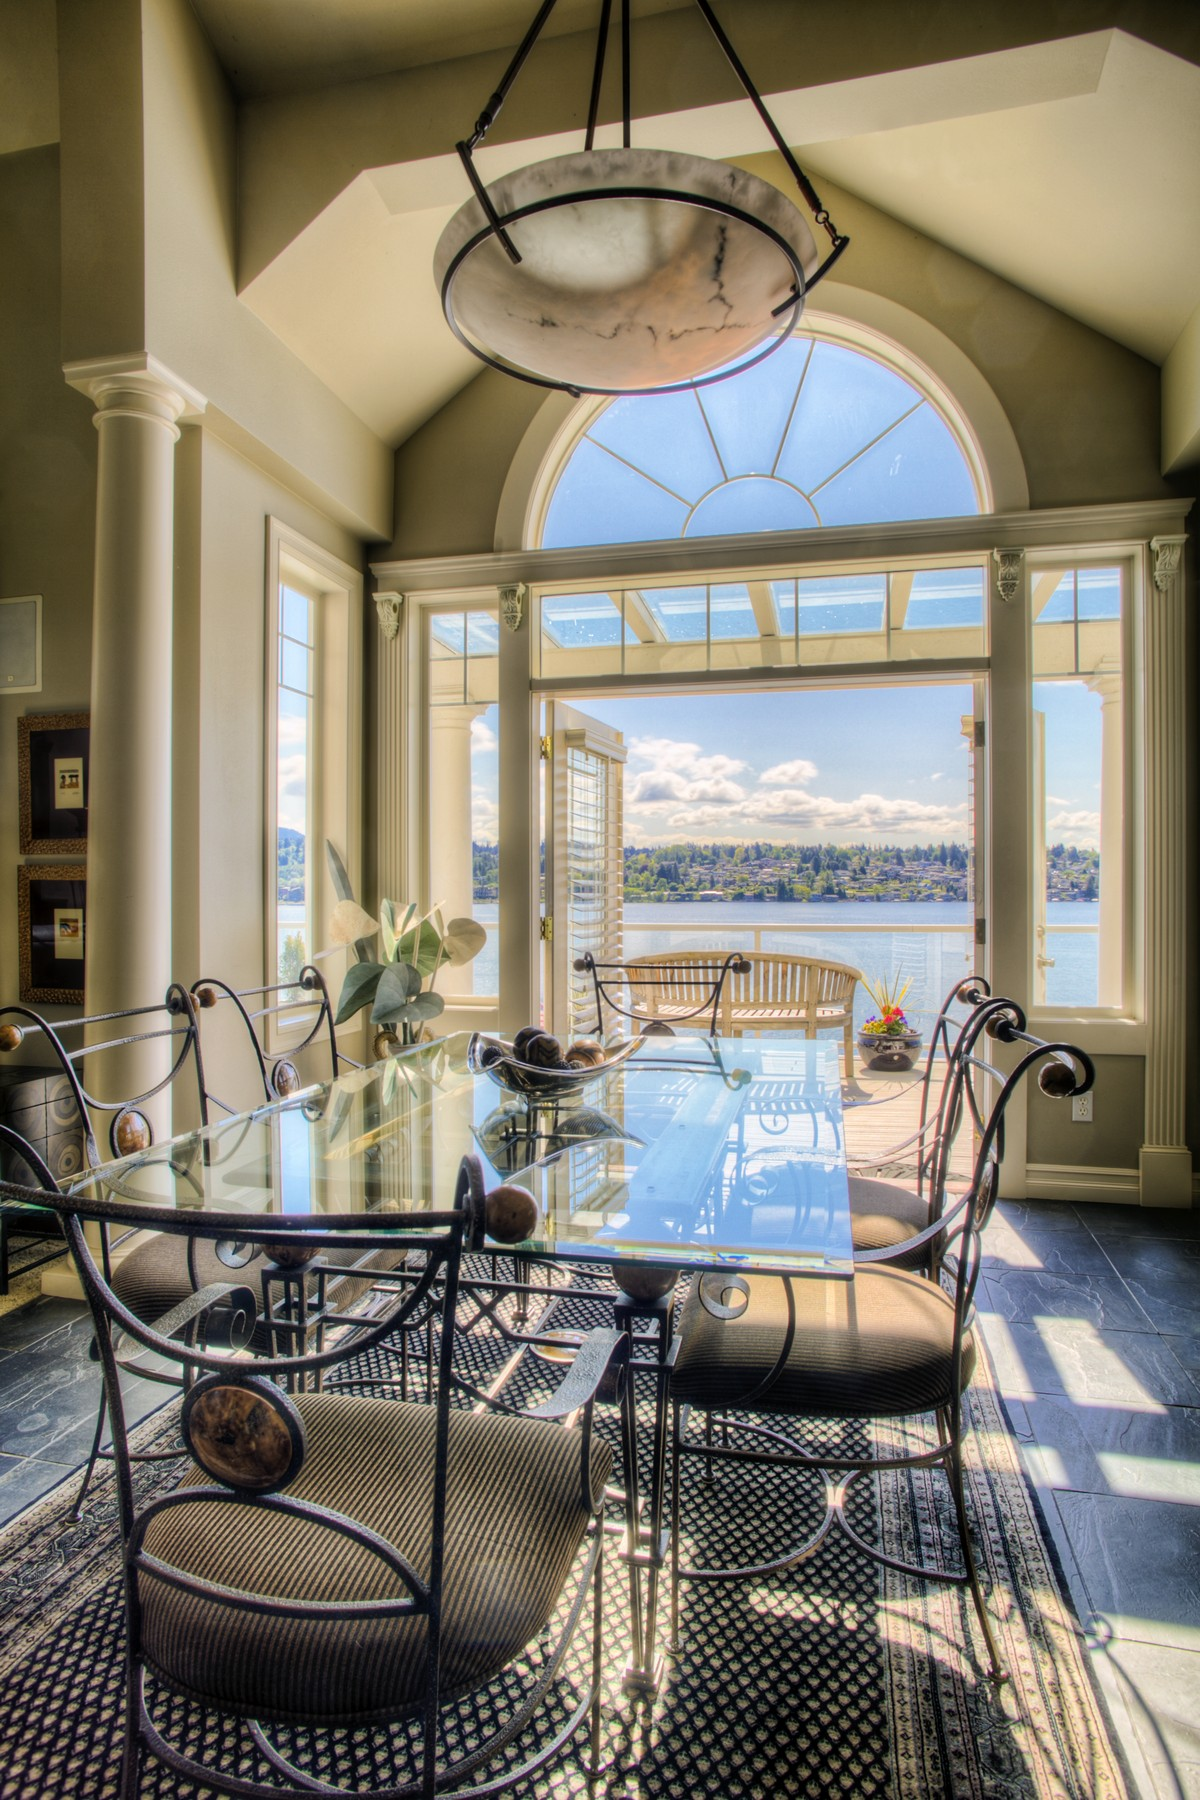 Single Family Home for Sale at Peaceful South End Waterfront Estate 7908 E Mercer Wy Mercer Island, Washington 98040 United States